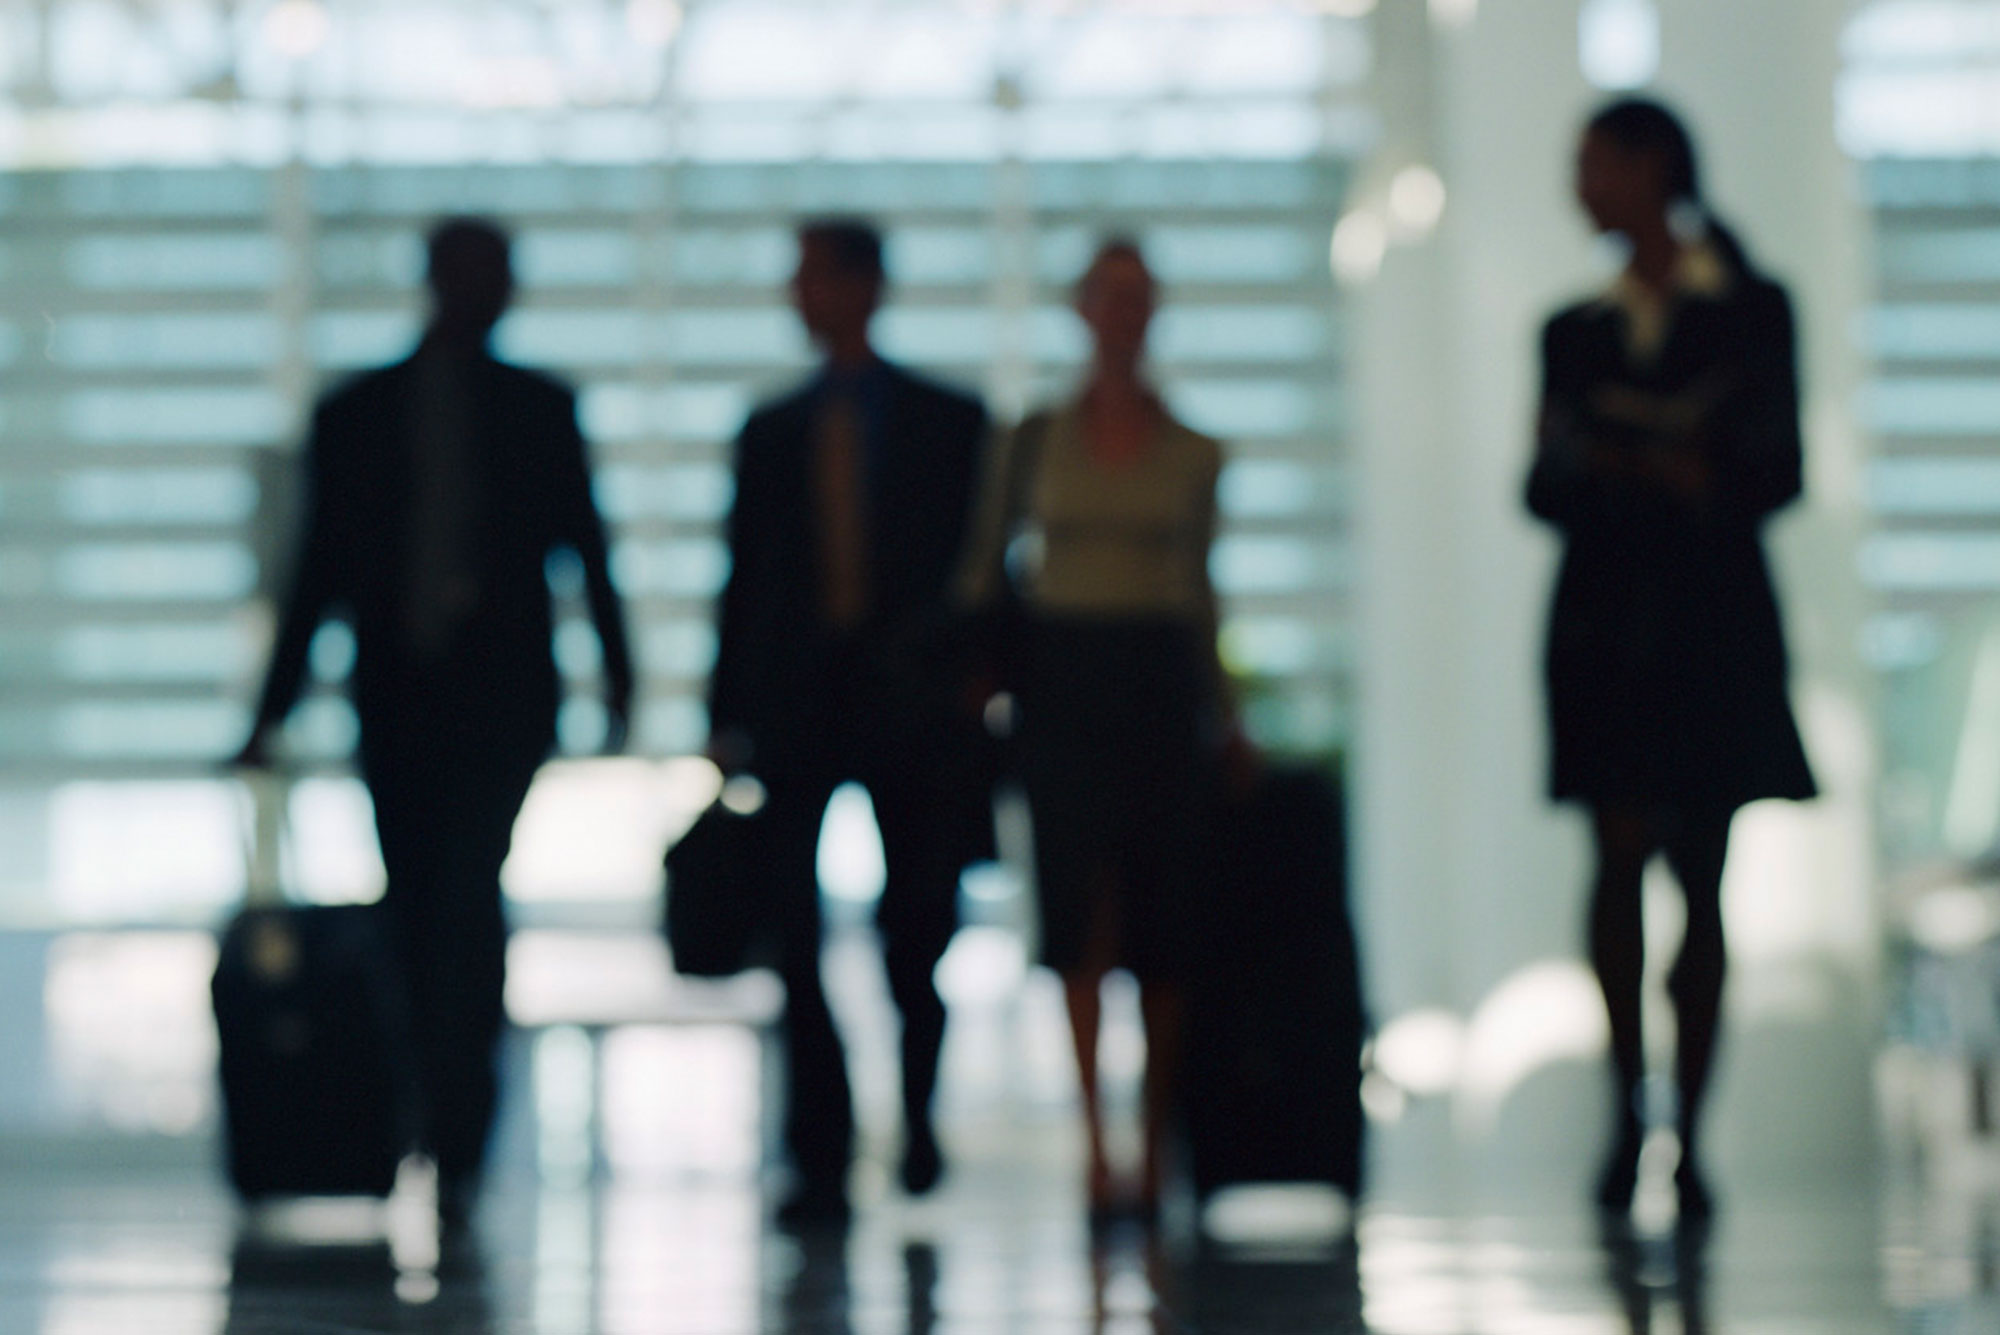 Blurred image of employees